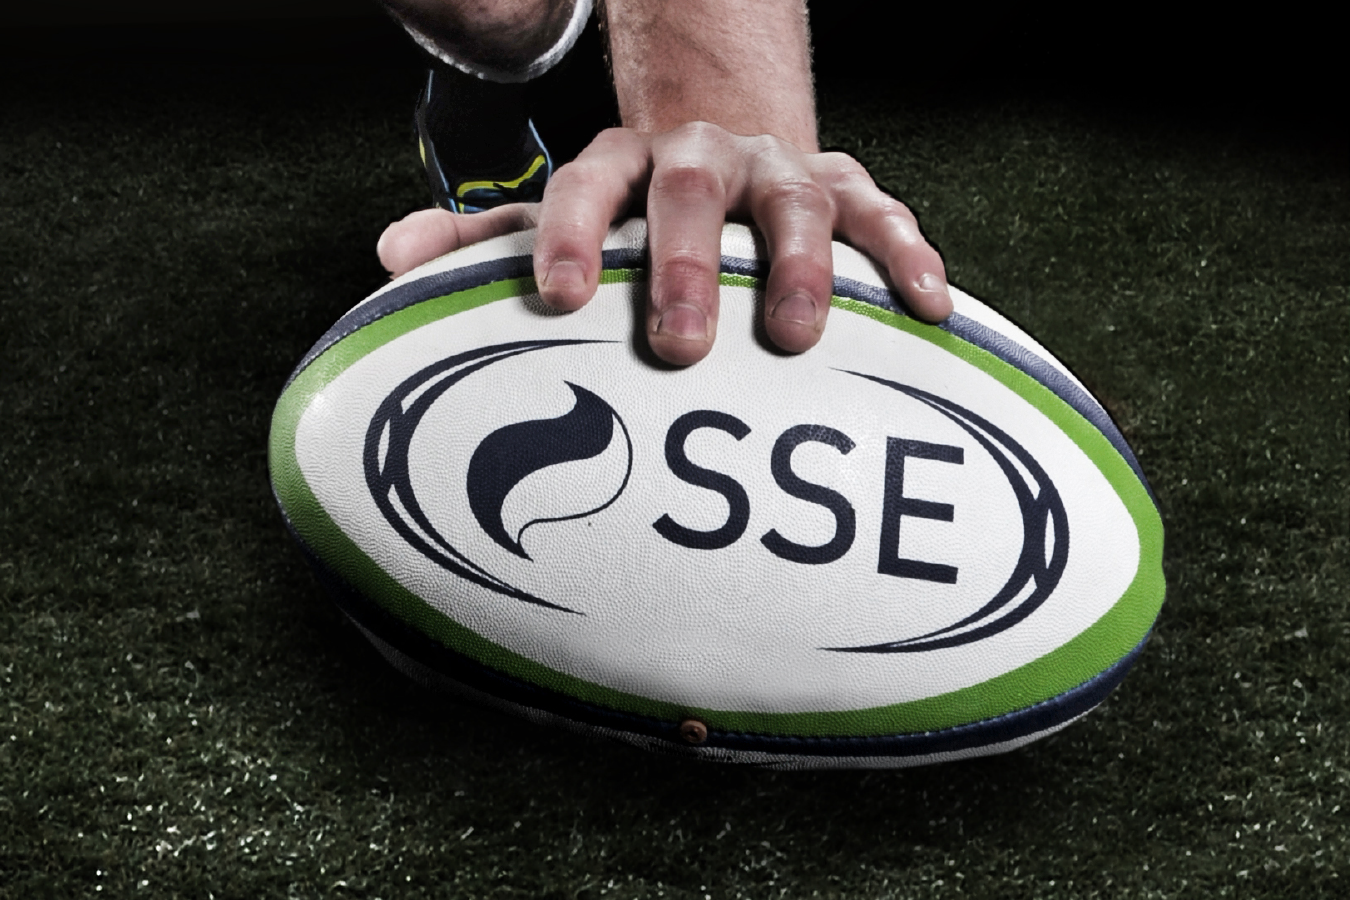 sse_rugby_ball.png